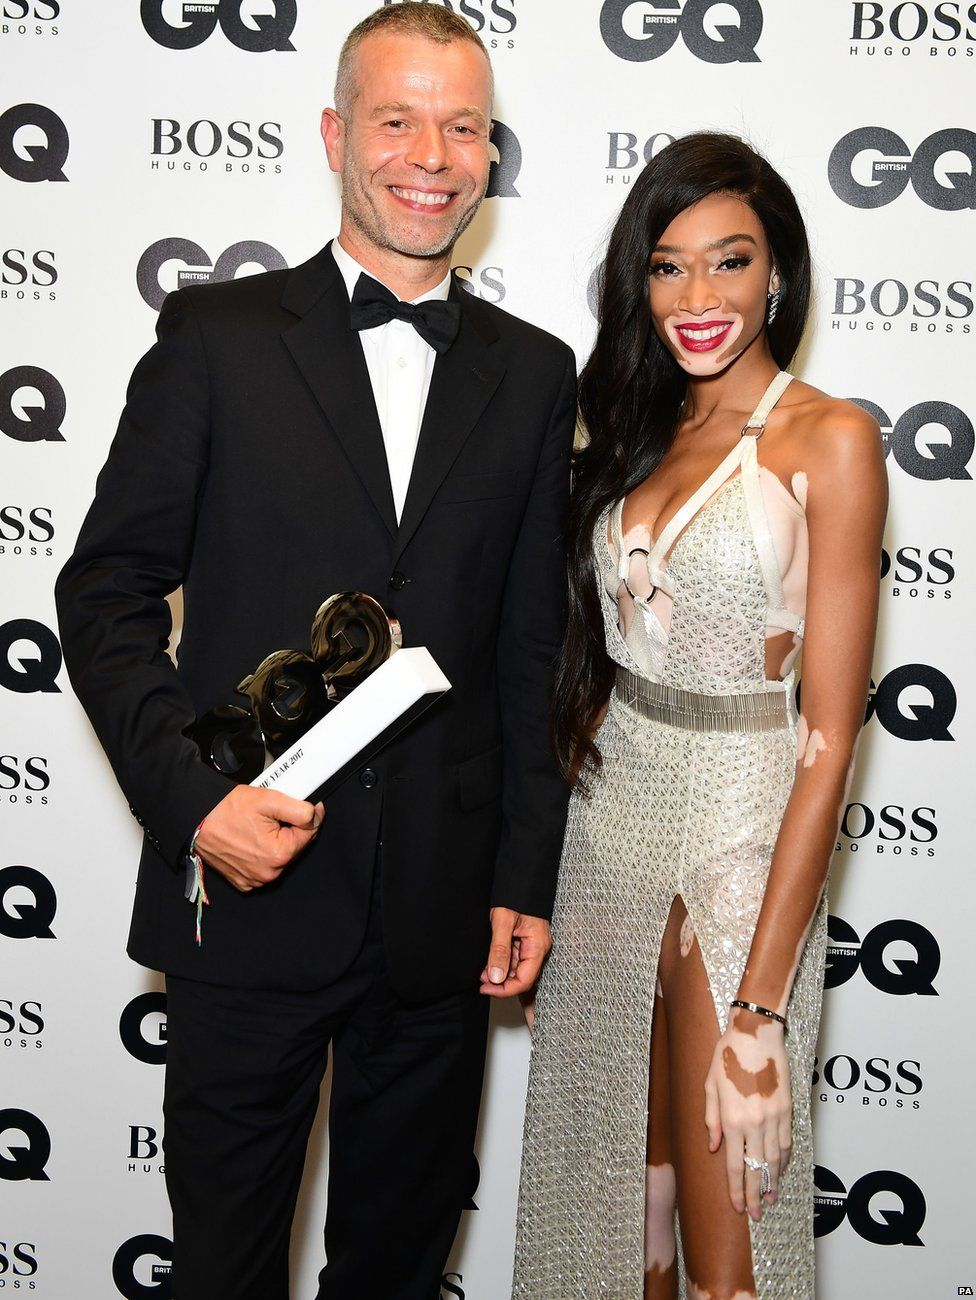 Wolfgang Tillmans and Winnie Harlow